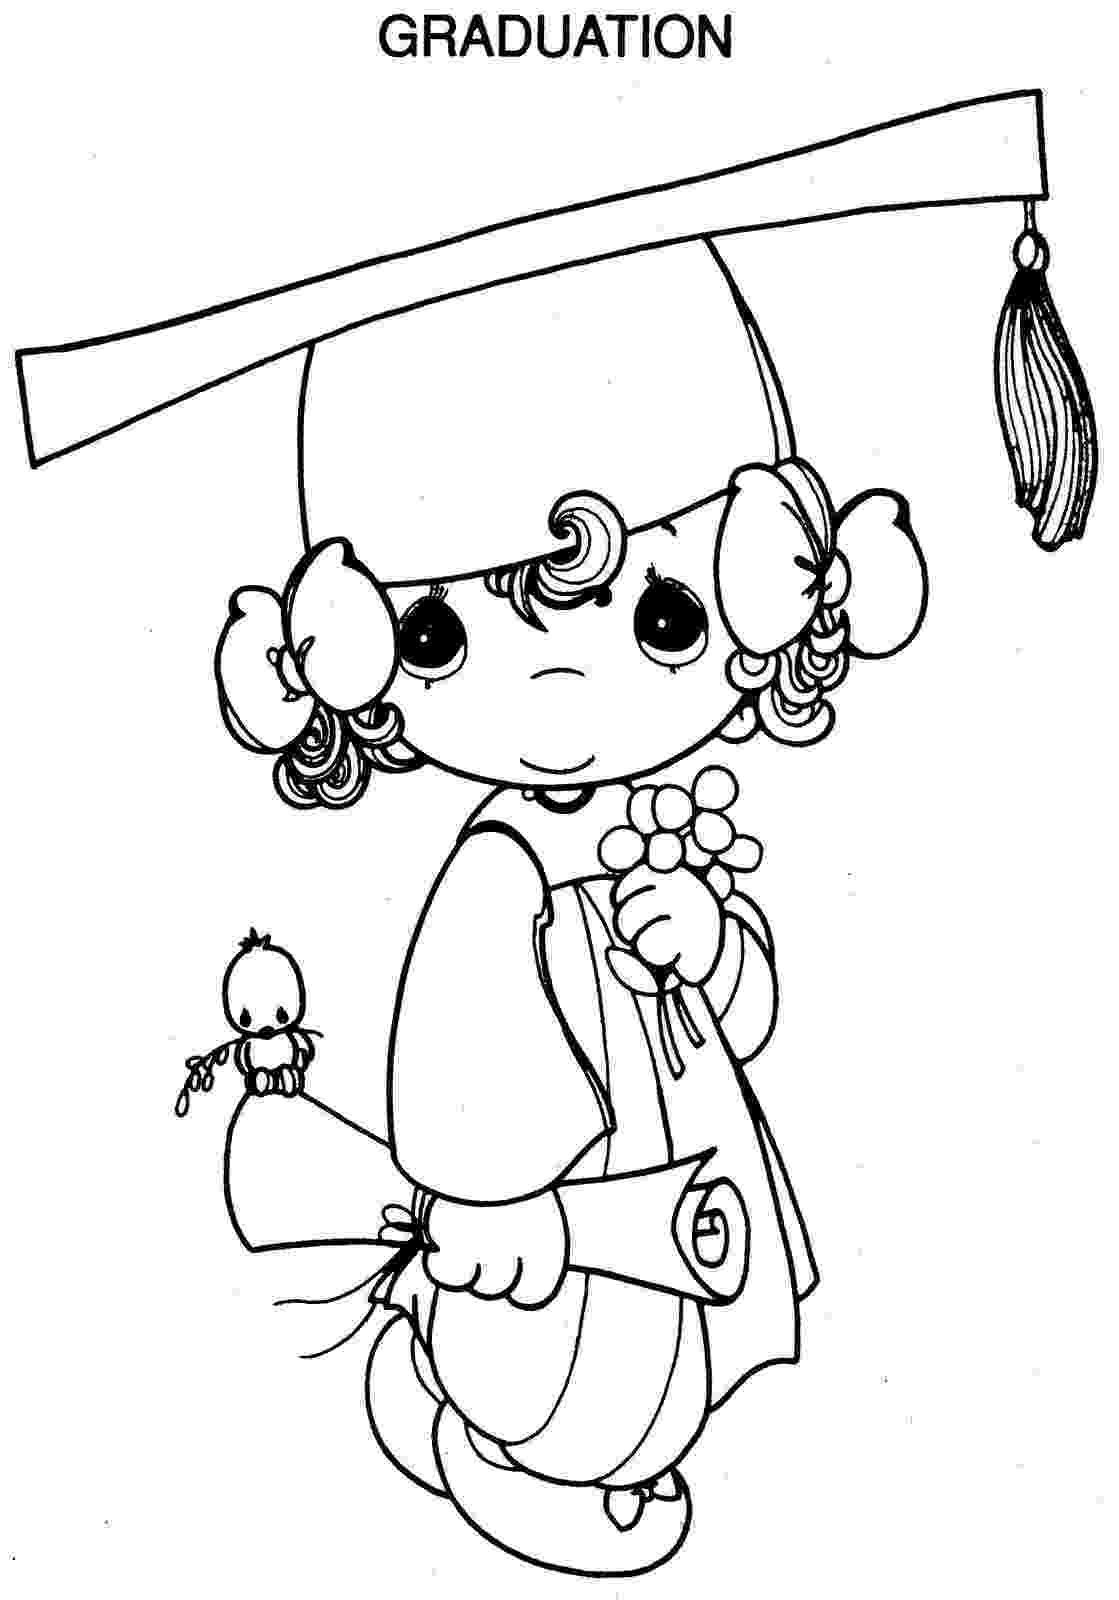 coloring pages for graduation graduation coloring pages to download and print for free coloring graduation for pages